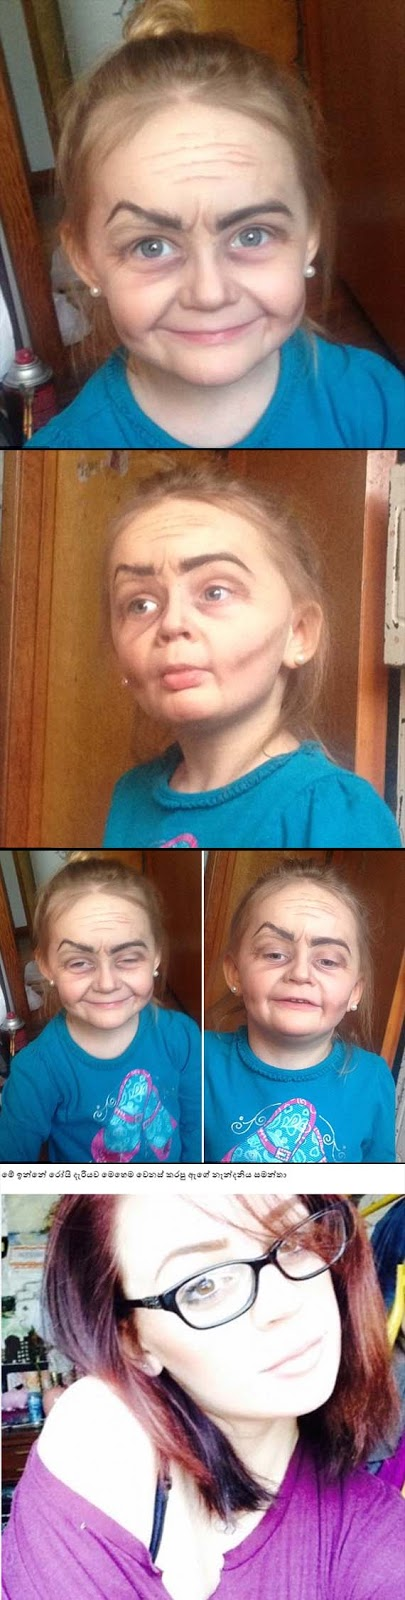 Make up artist turns a 3-year-old Girl into a old woman